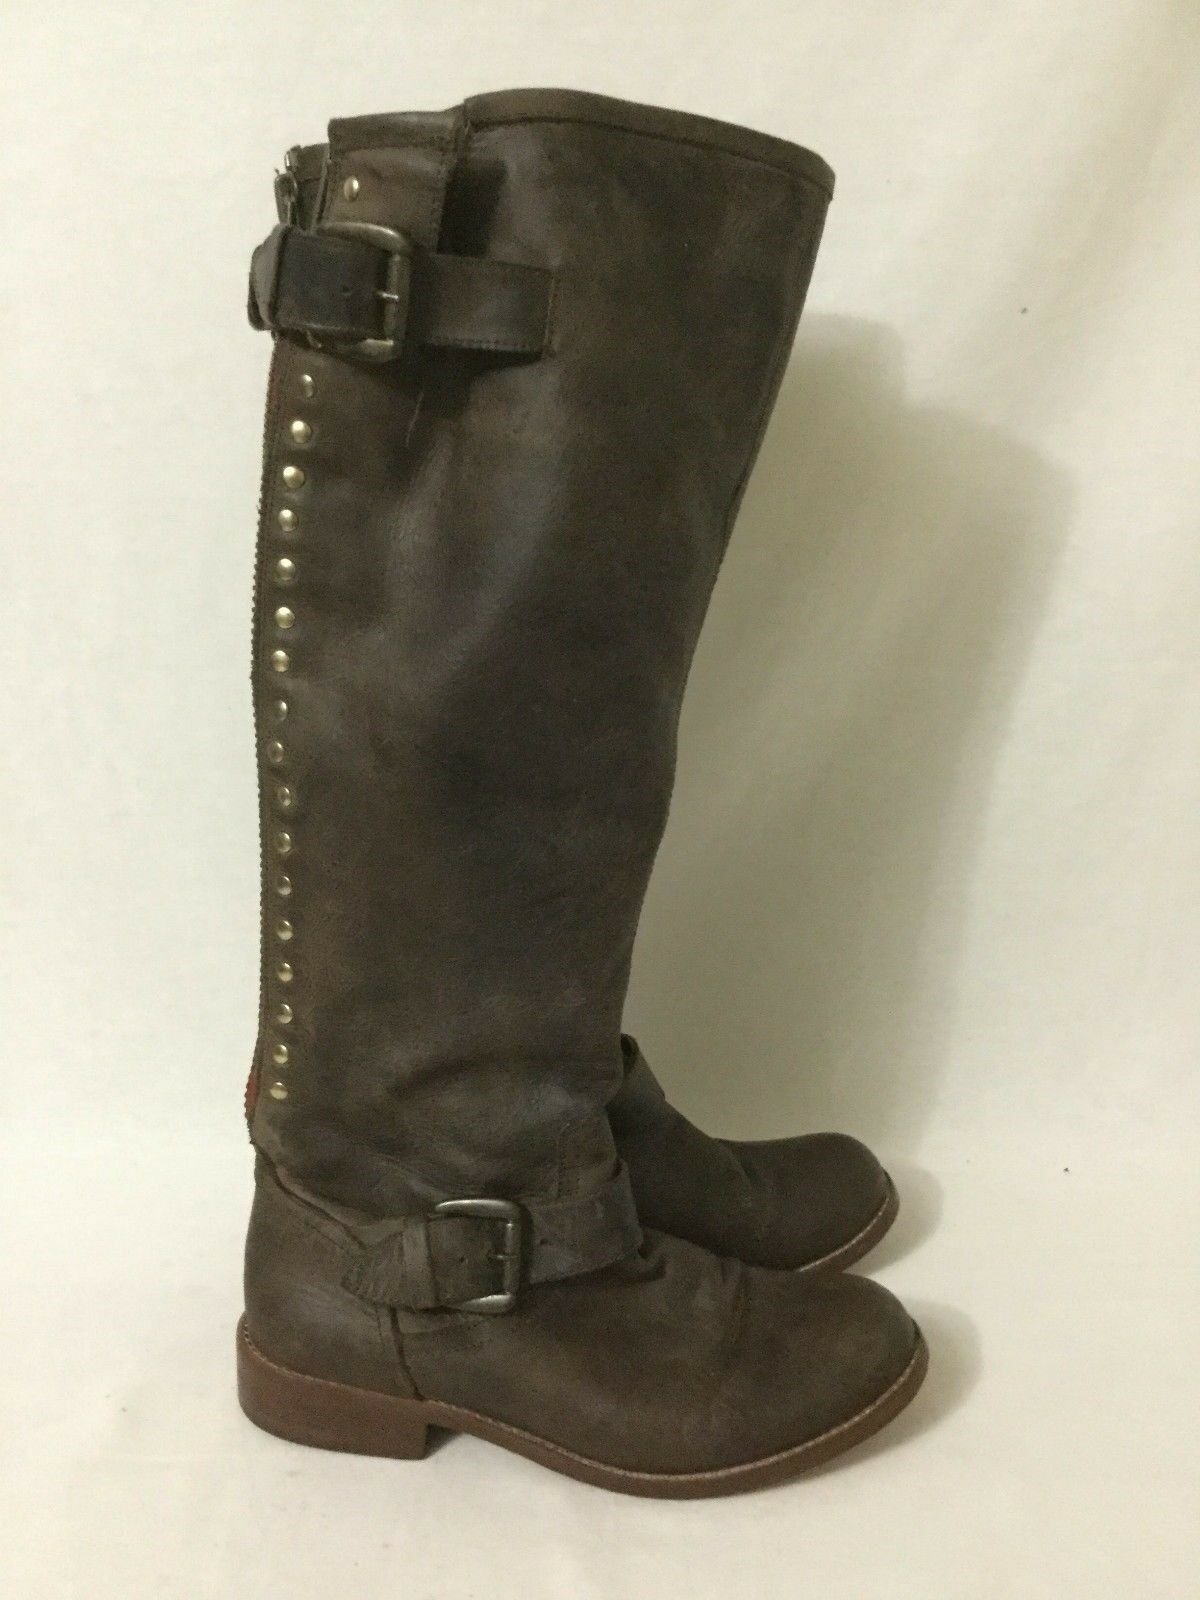 Steve Madden Lynxx Brown Red Leather Riding Boots Size 6